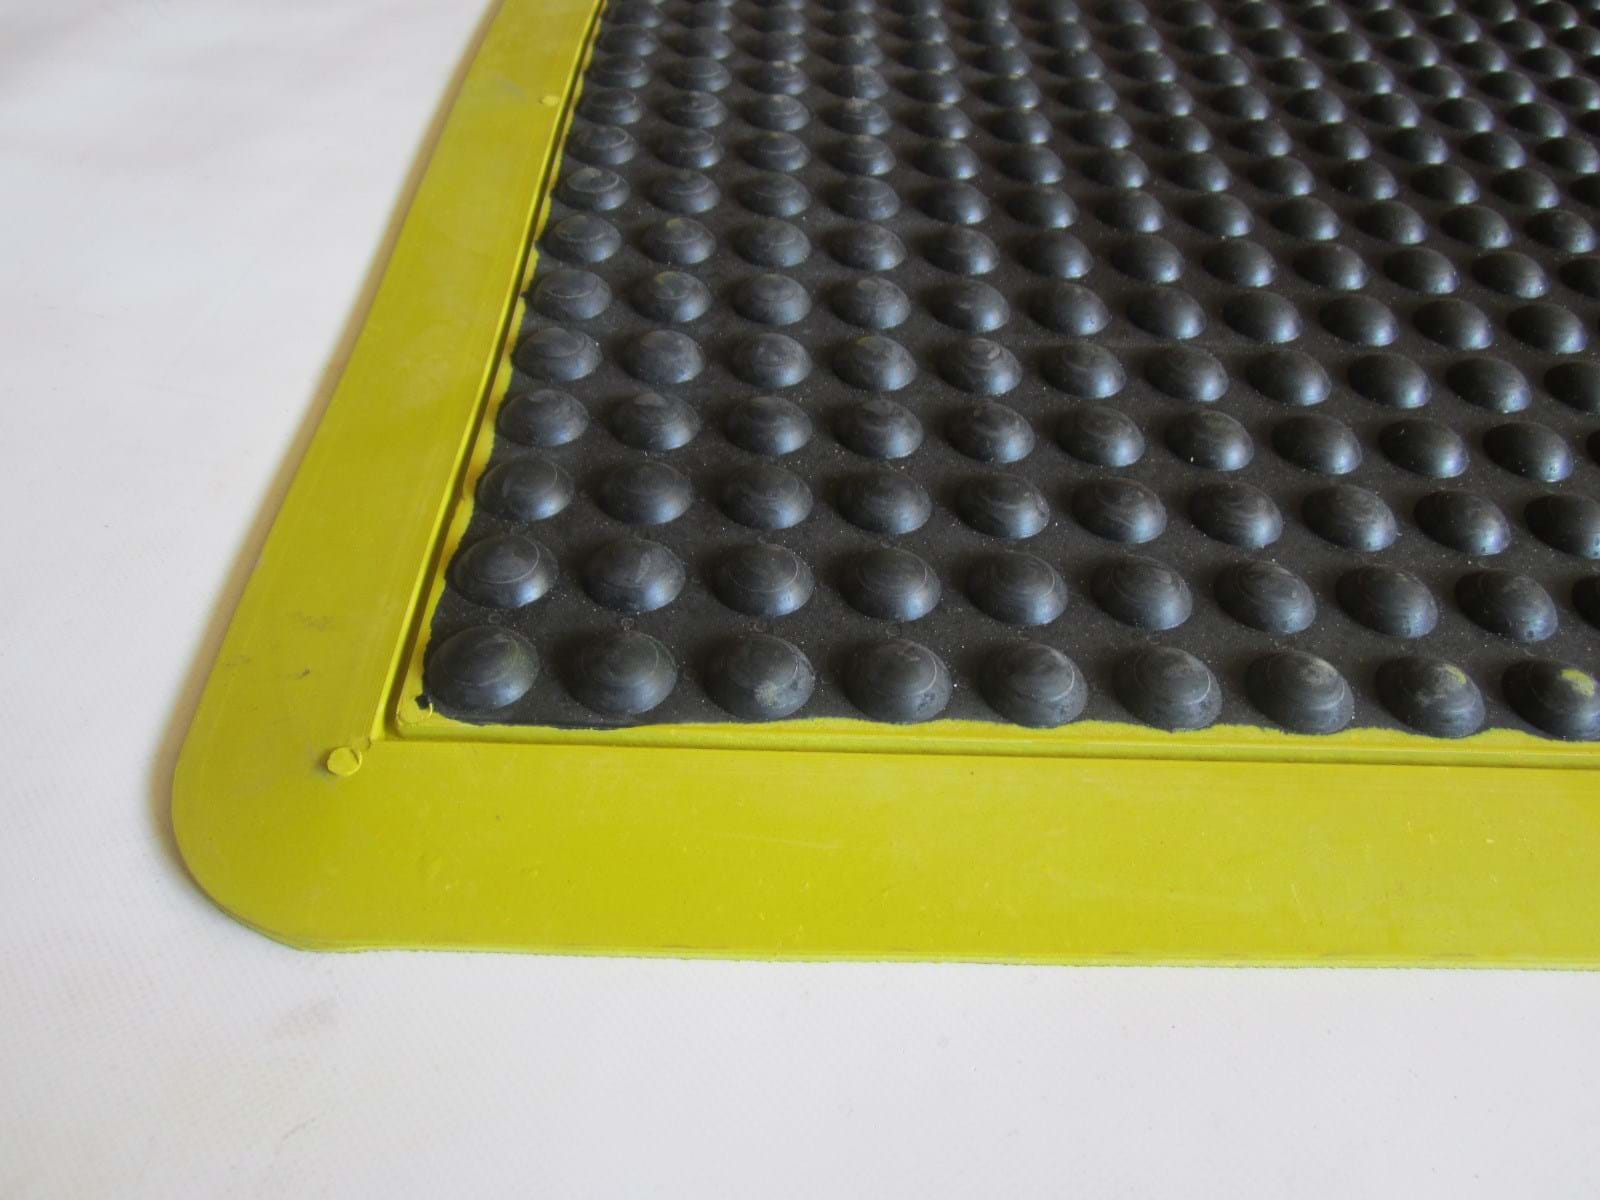 Anti Fatigue Mats Australasian Rubber Supplies Dome